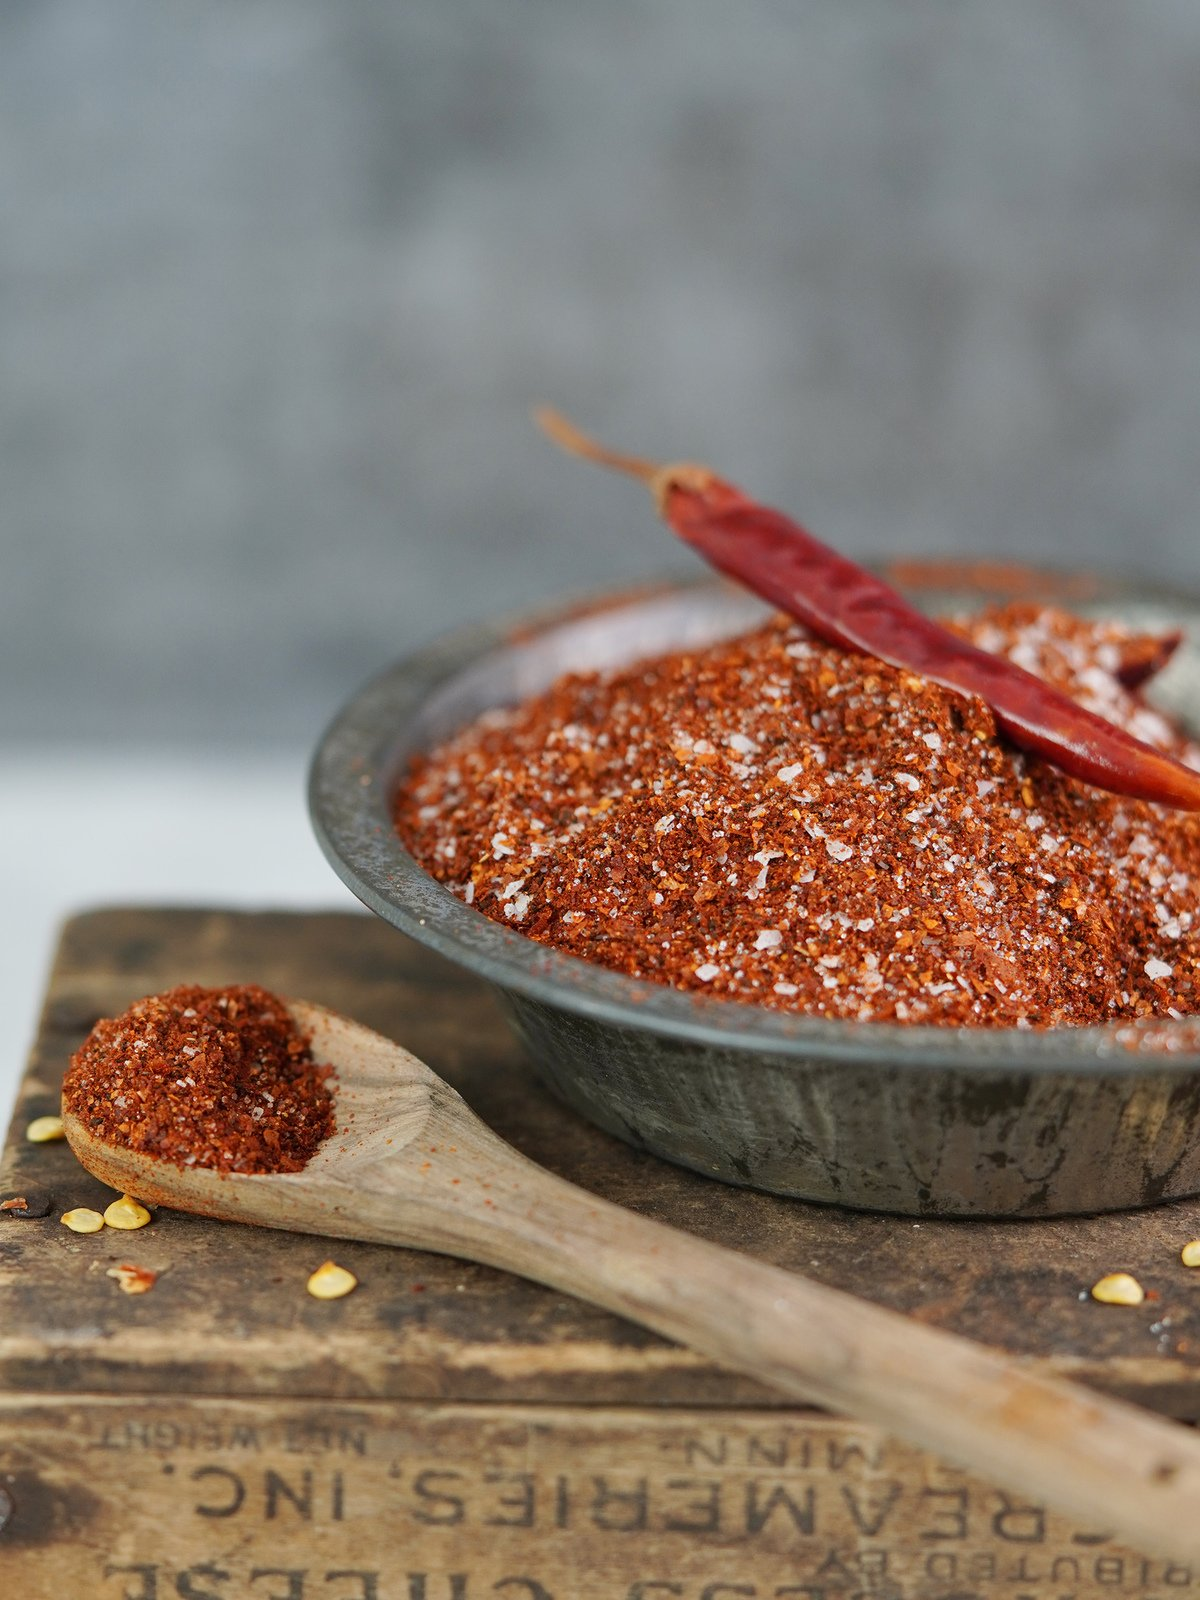 Chili powder in a small bowl